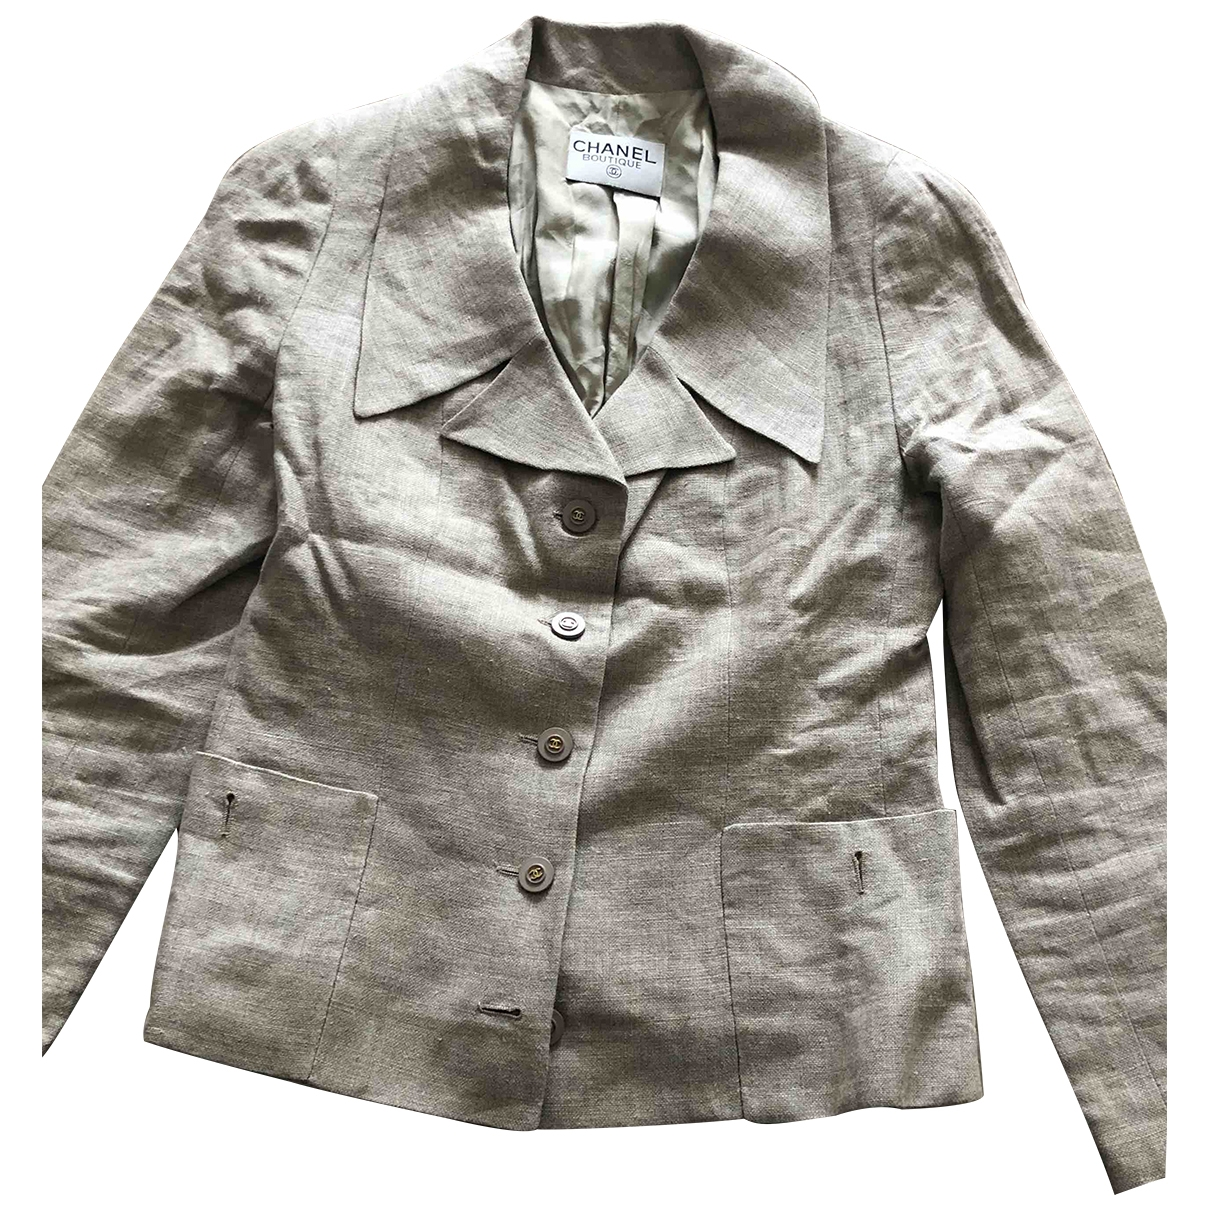 Chanel \N Beige Linen jacket for Women 40 FR